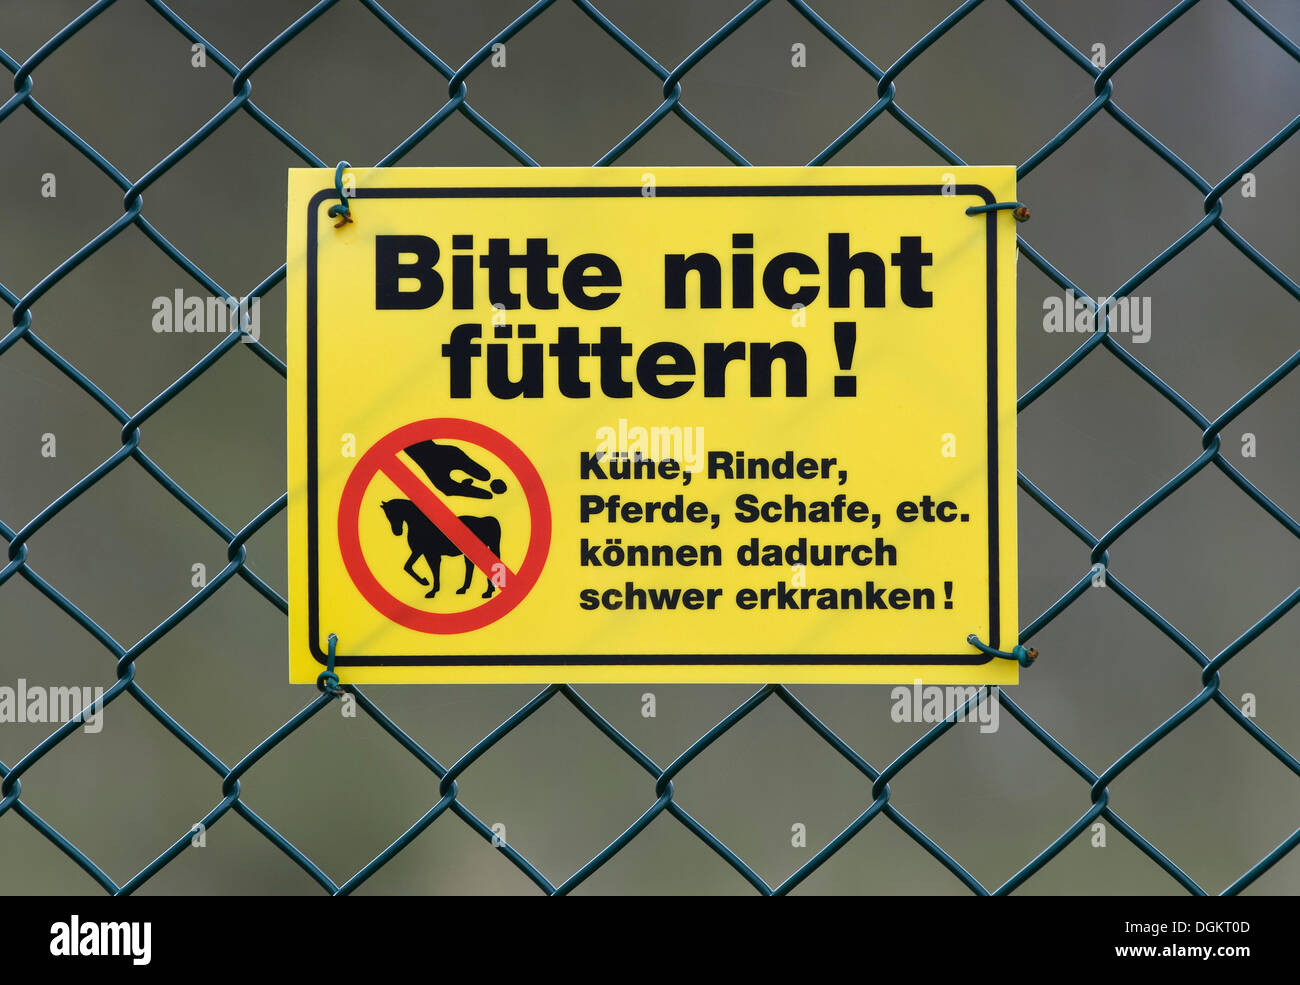 Warning sign, Bitte nicht fuettern, Kuehe, Rinder, Pferde, Schafe etc, koennen dadurch schwer erkranken, German for Do Not Feed - Stock Image